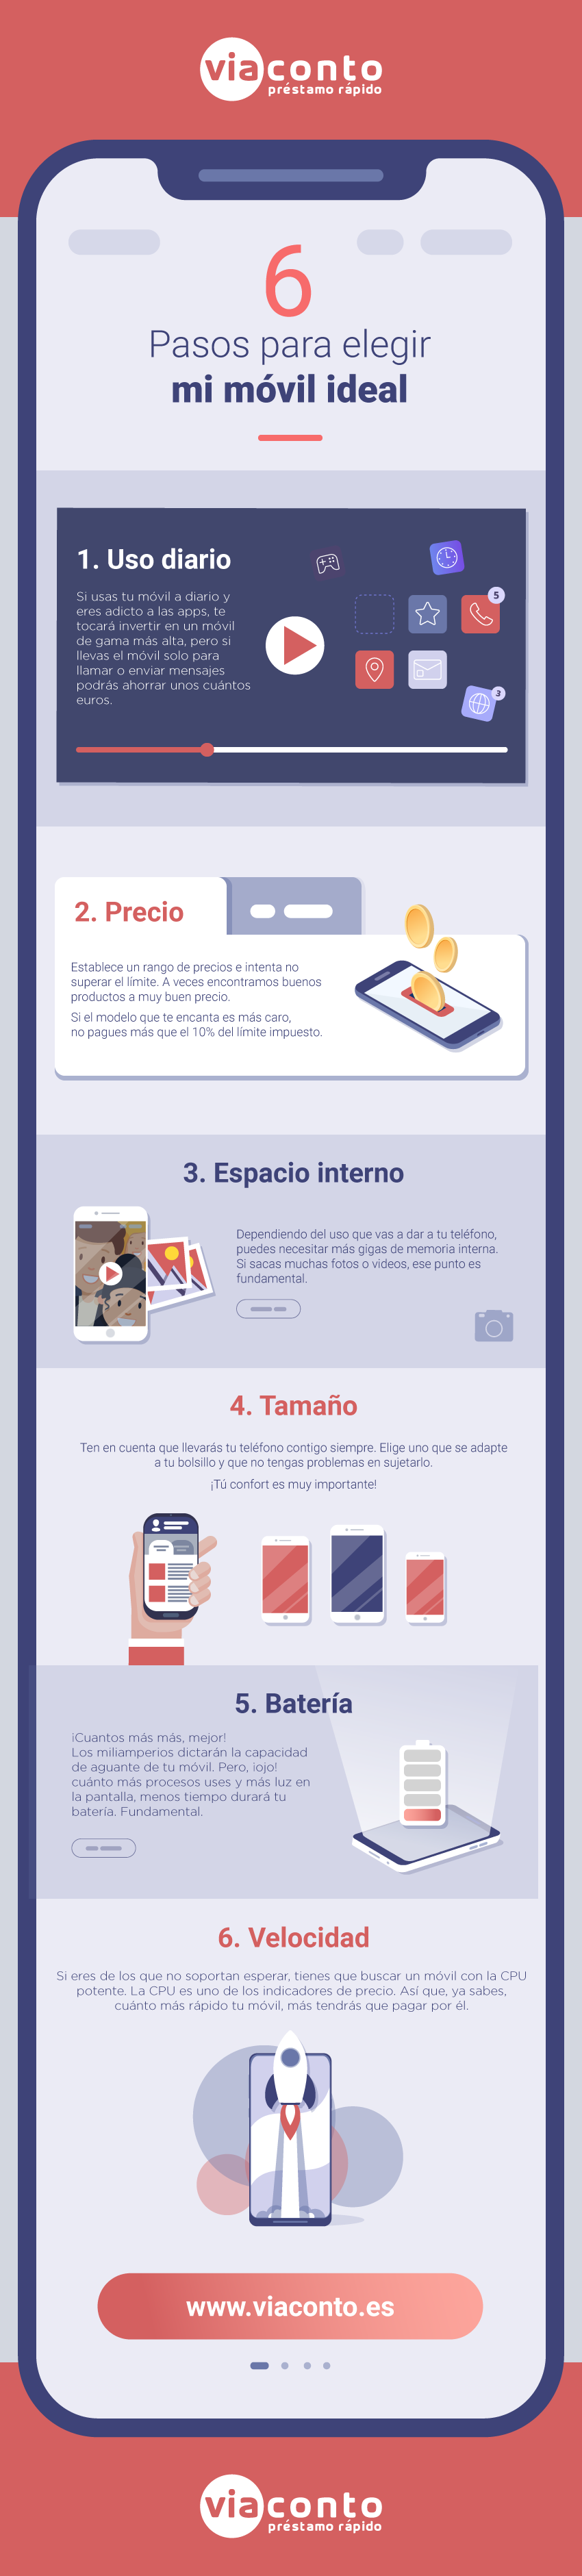 infografia-movil-viaconto